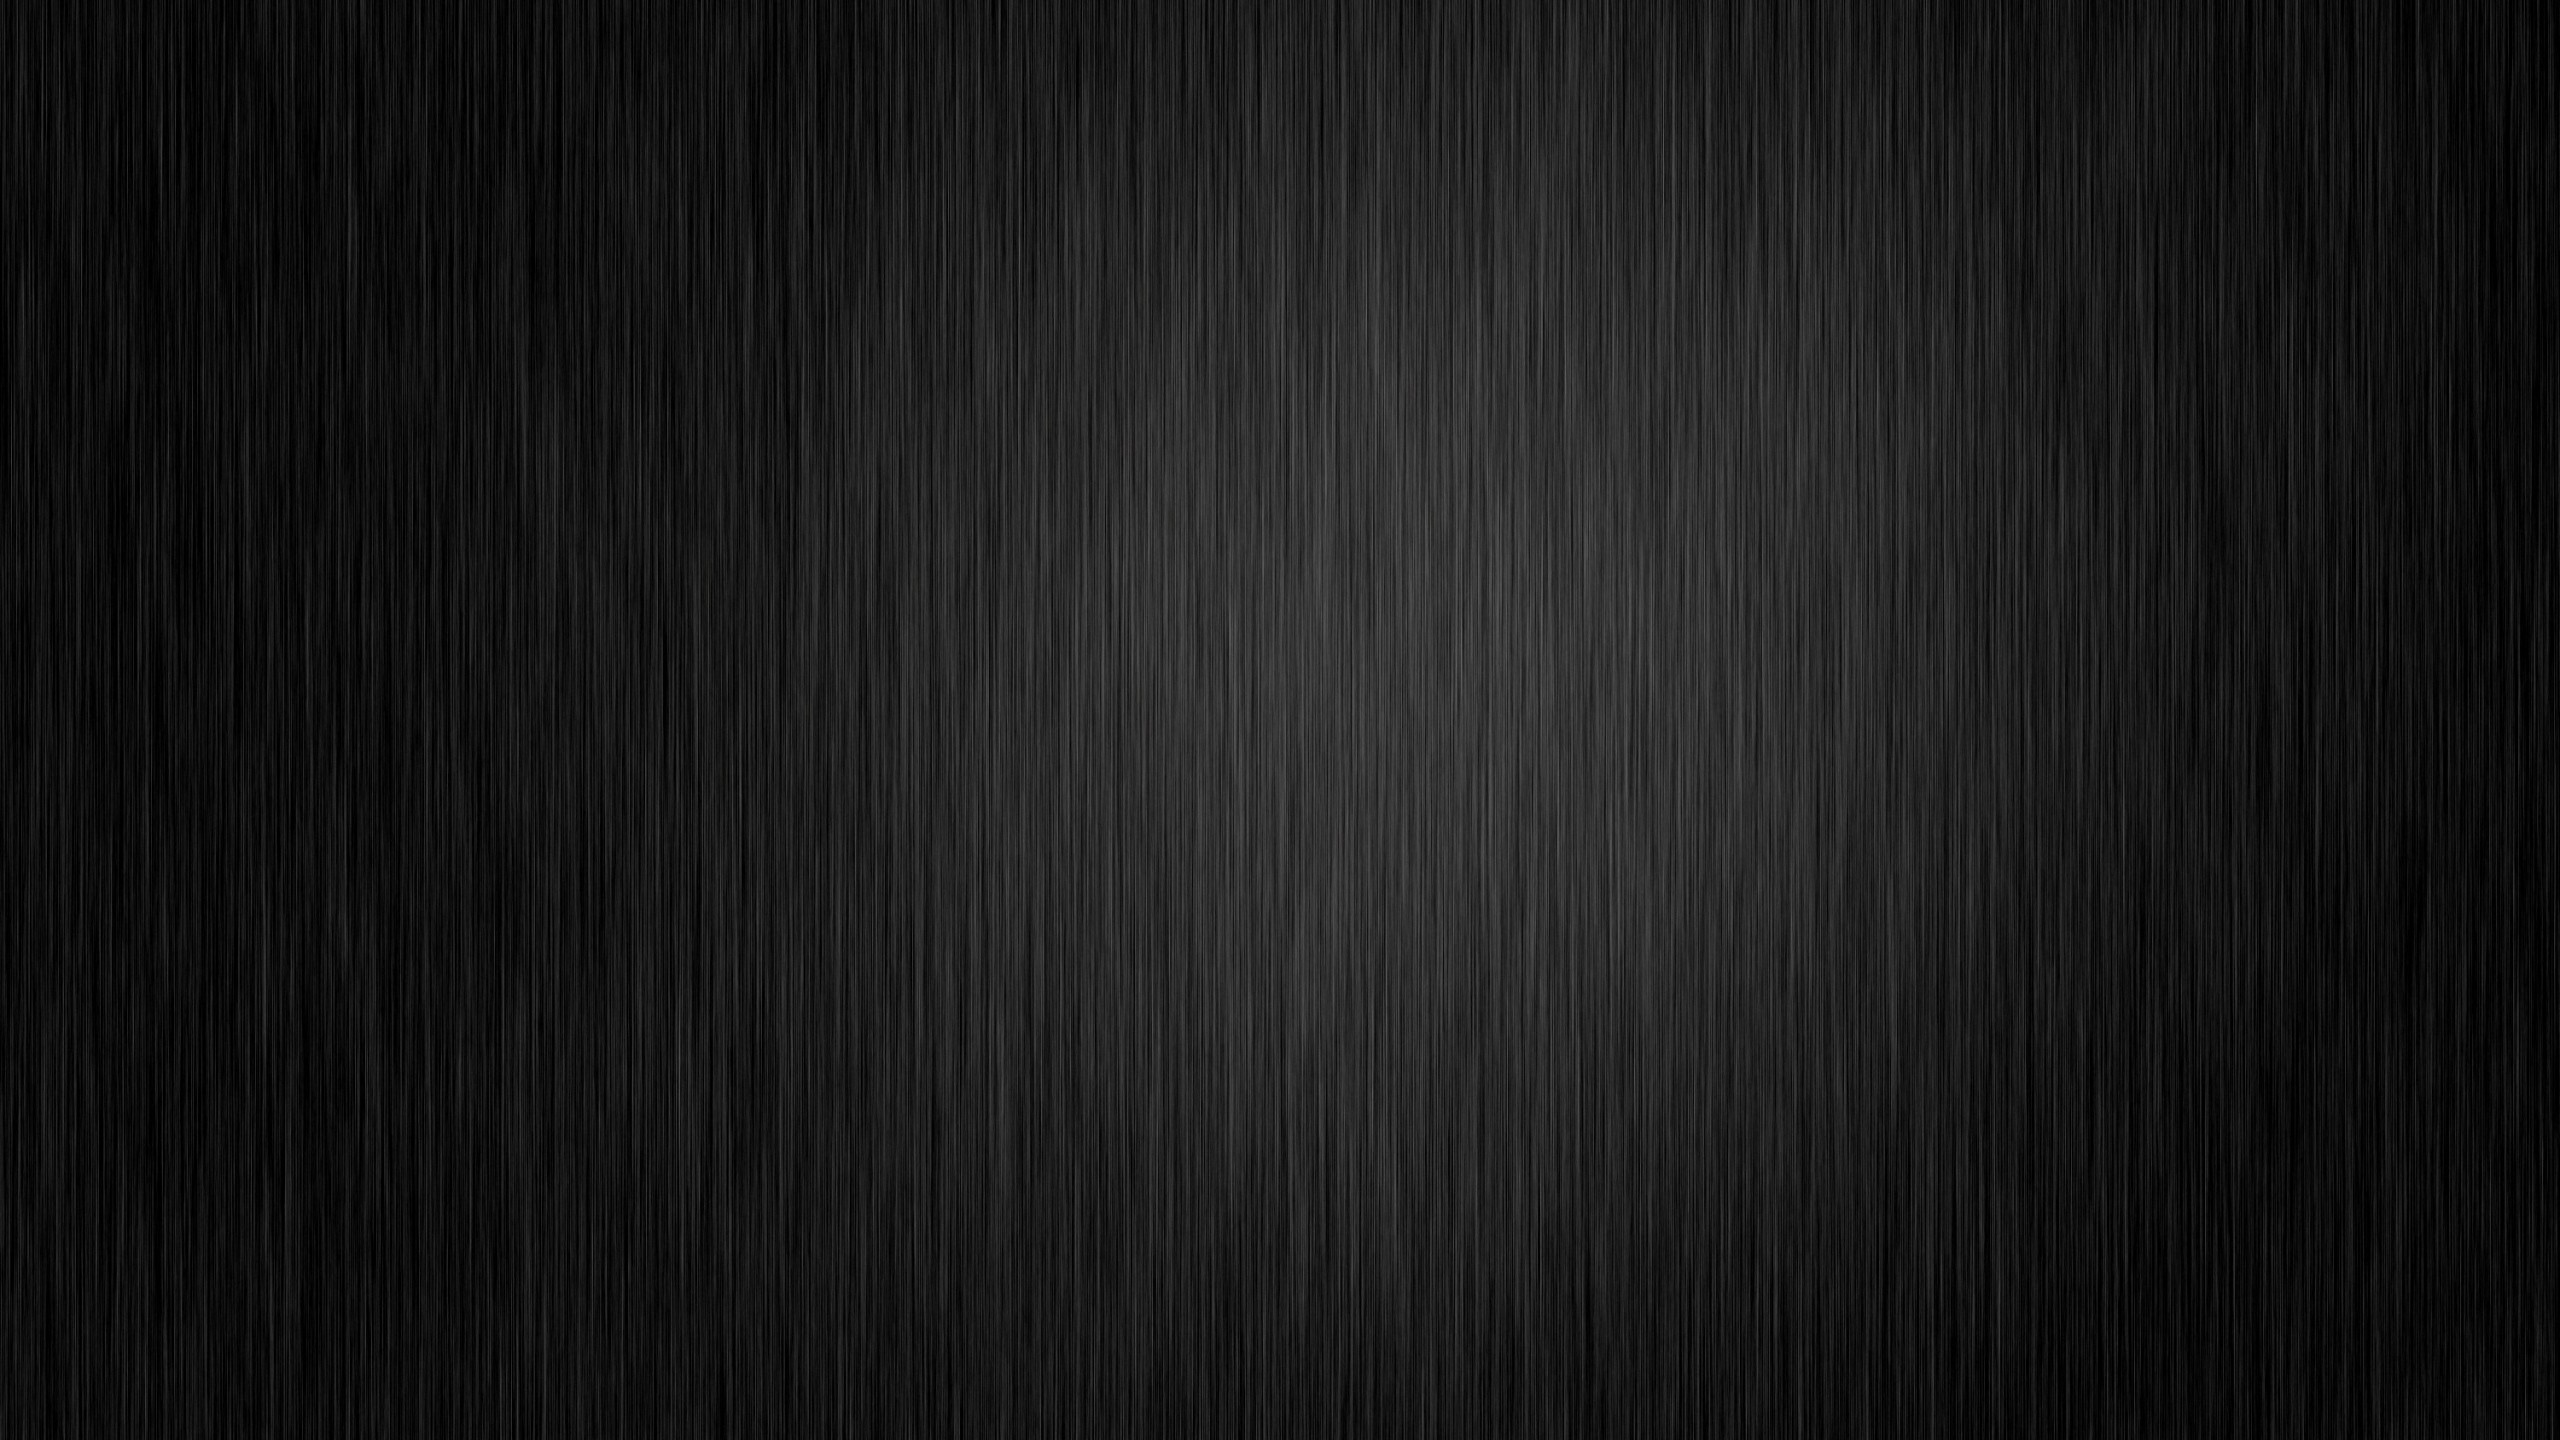 2560x1440 Black Background Posted By Ethan Mercado